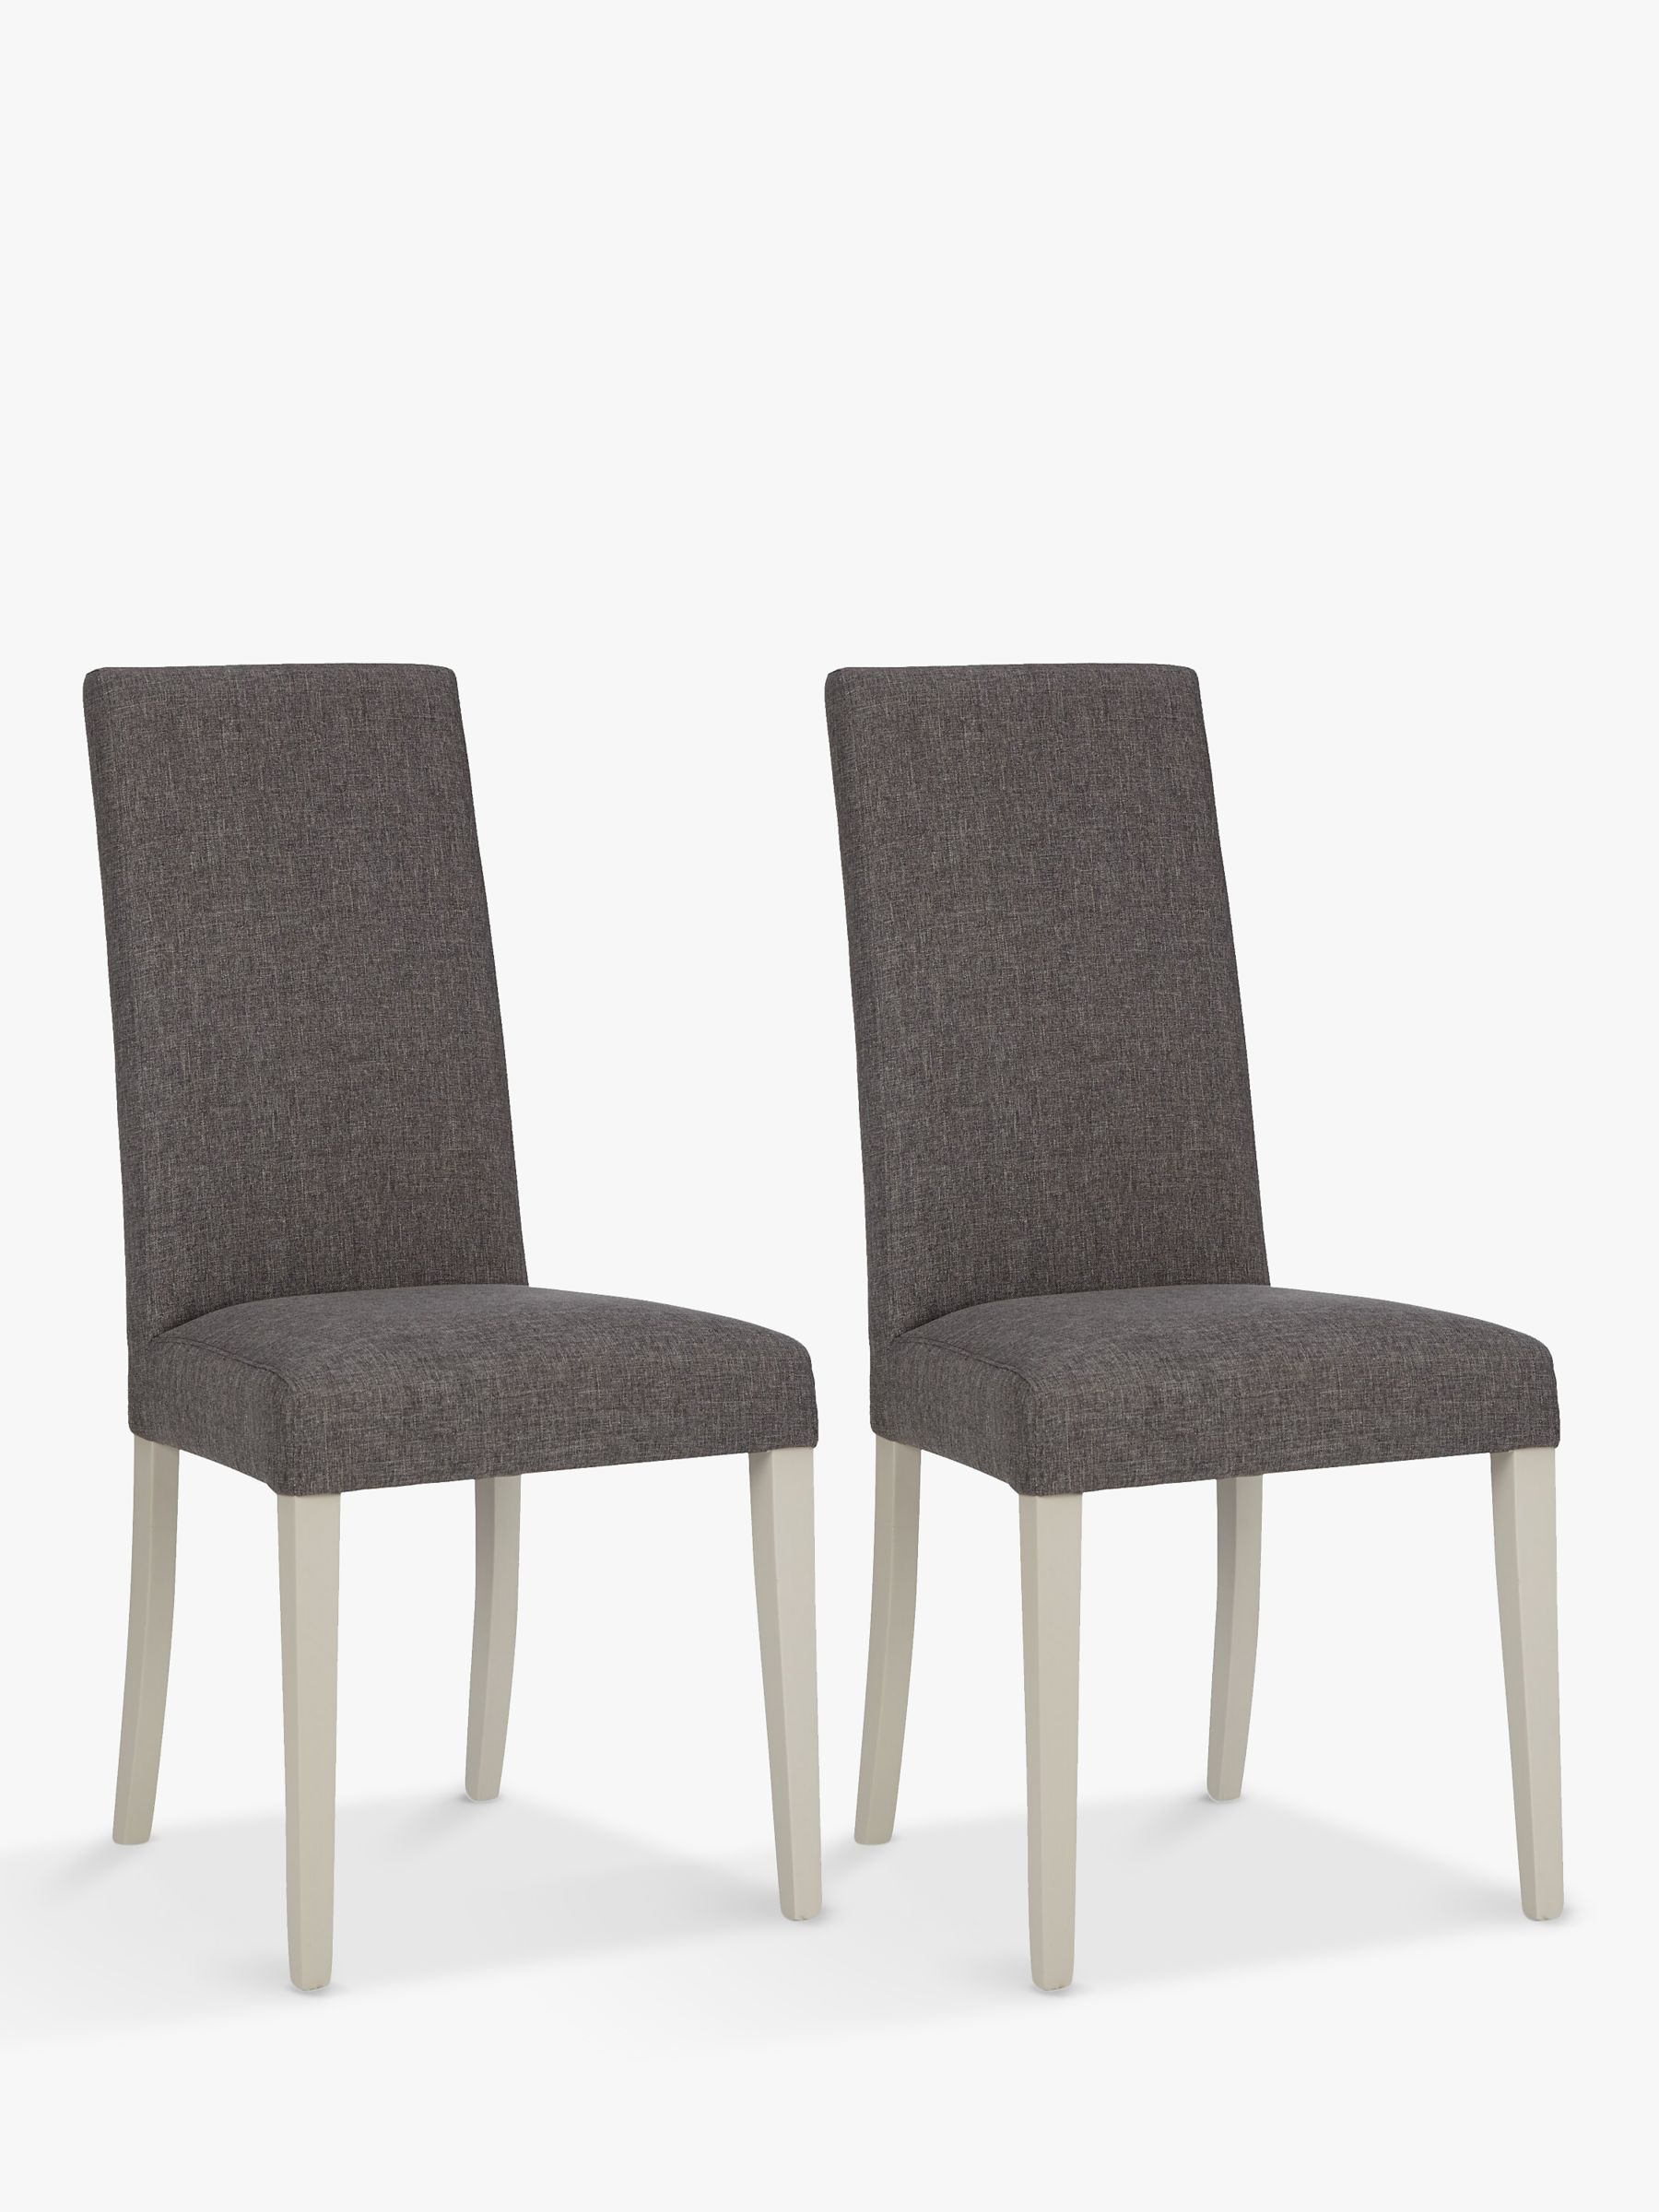 ANYDAY John Lewis & Partners Alba Lydia Dining Chairs, Set of 2, FSC-Certified (Beech Wood), Soft Grey